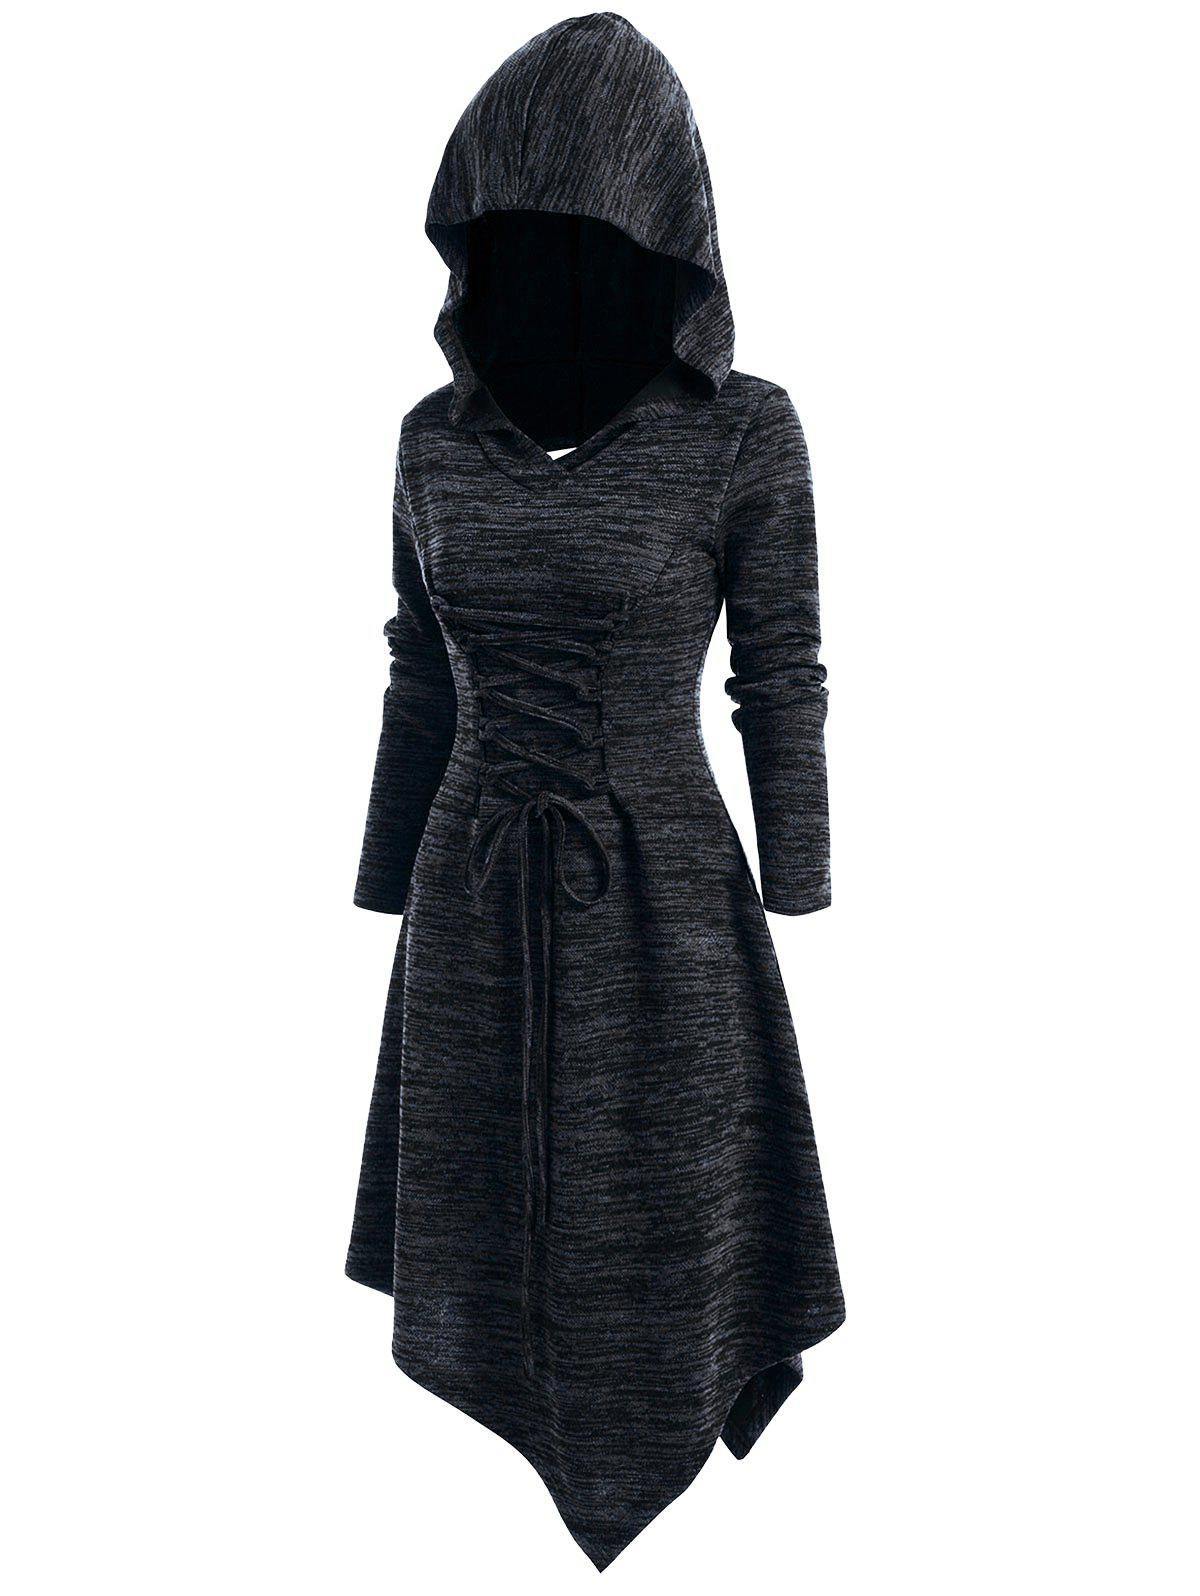 Lace Up Heathered Asymmetric Hooded Dress - BLACK XL